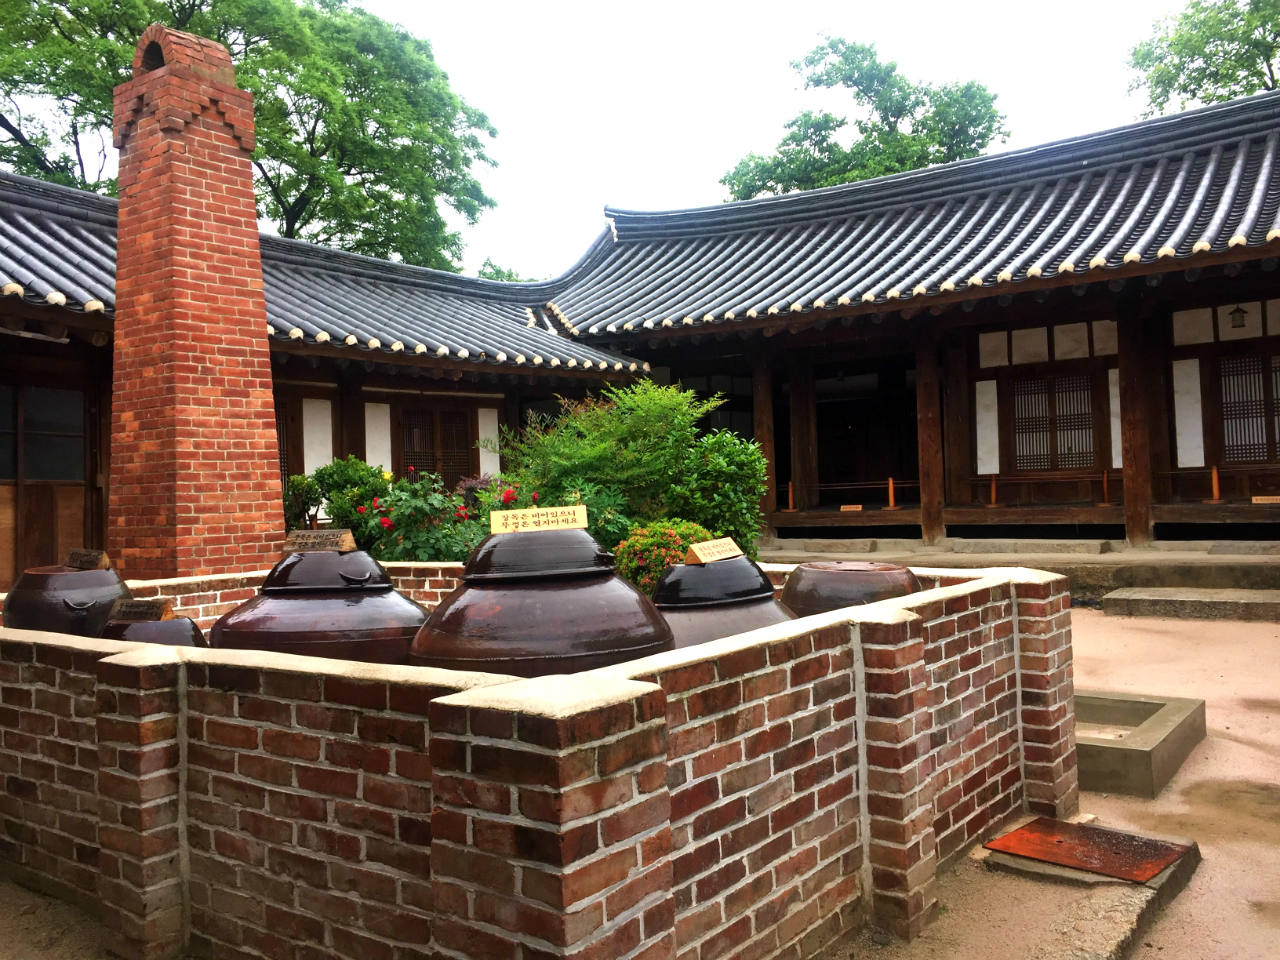 STEP INSIDE. And see for yourself how previous generations of the Choi clan lived.